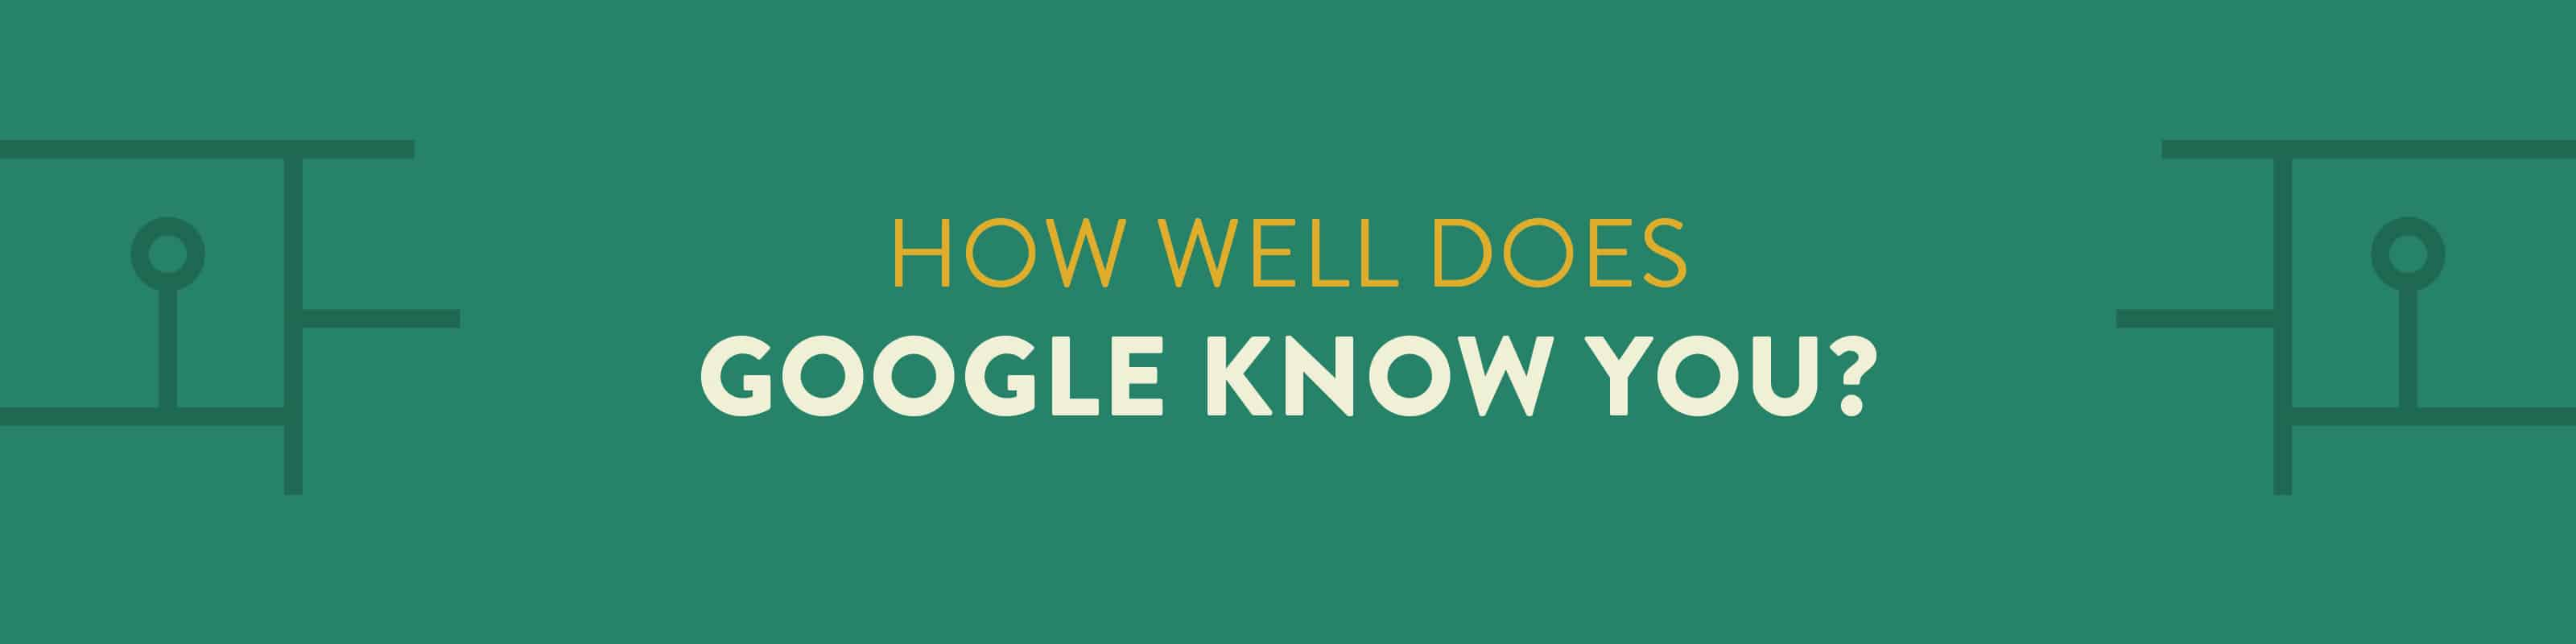 what does google know about you